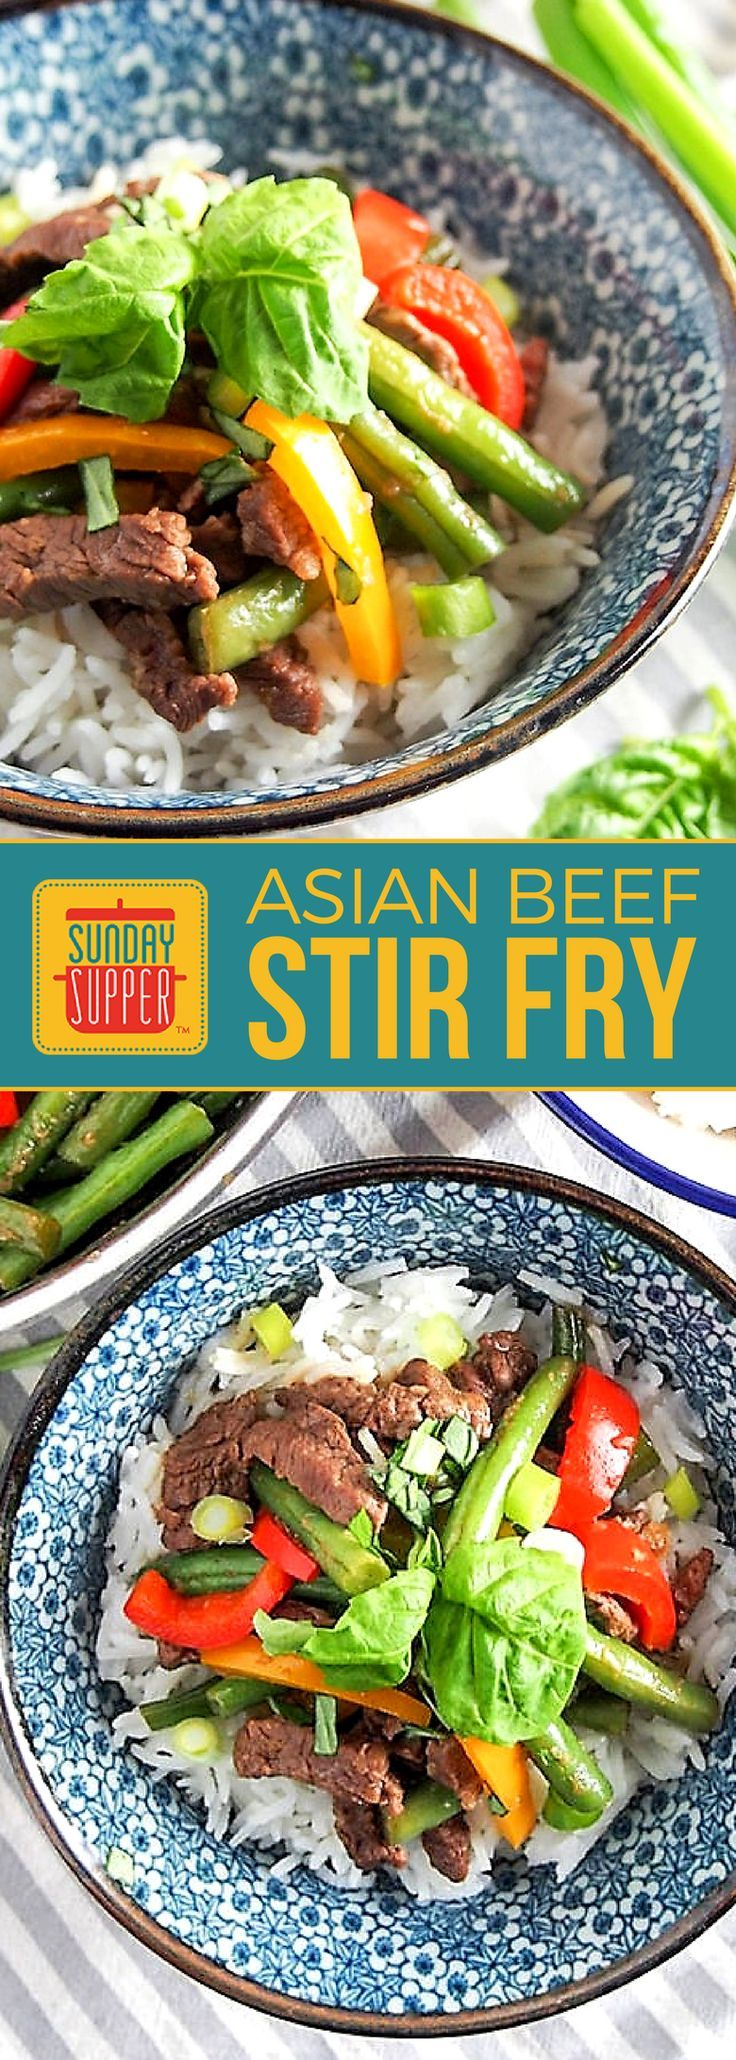 Eat healthy green food and amazing flavor all in one dish thats eat healthy green food and amazing flavor all in one dish thats quick and easy to make our asian beef stir fry recipe with green beans is a flav forumfinder Images